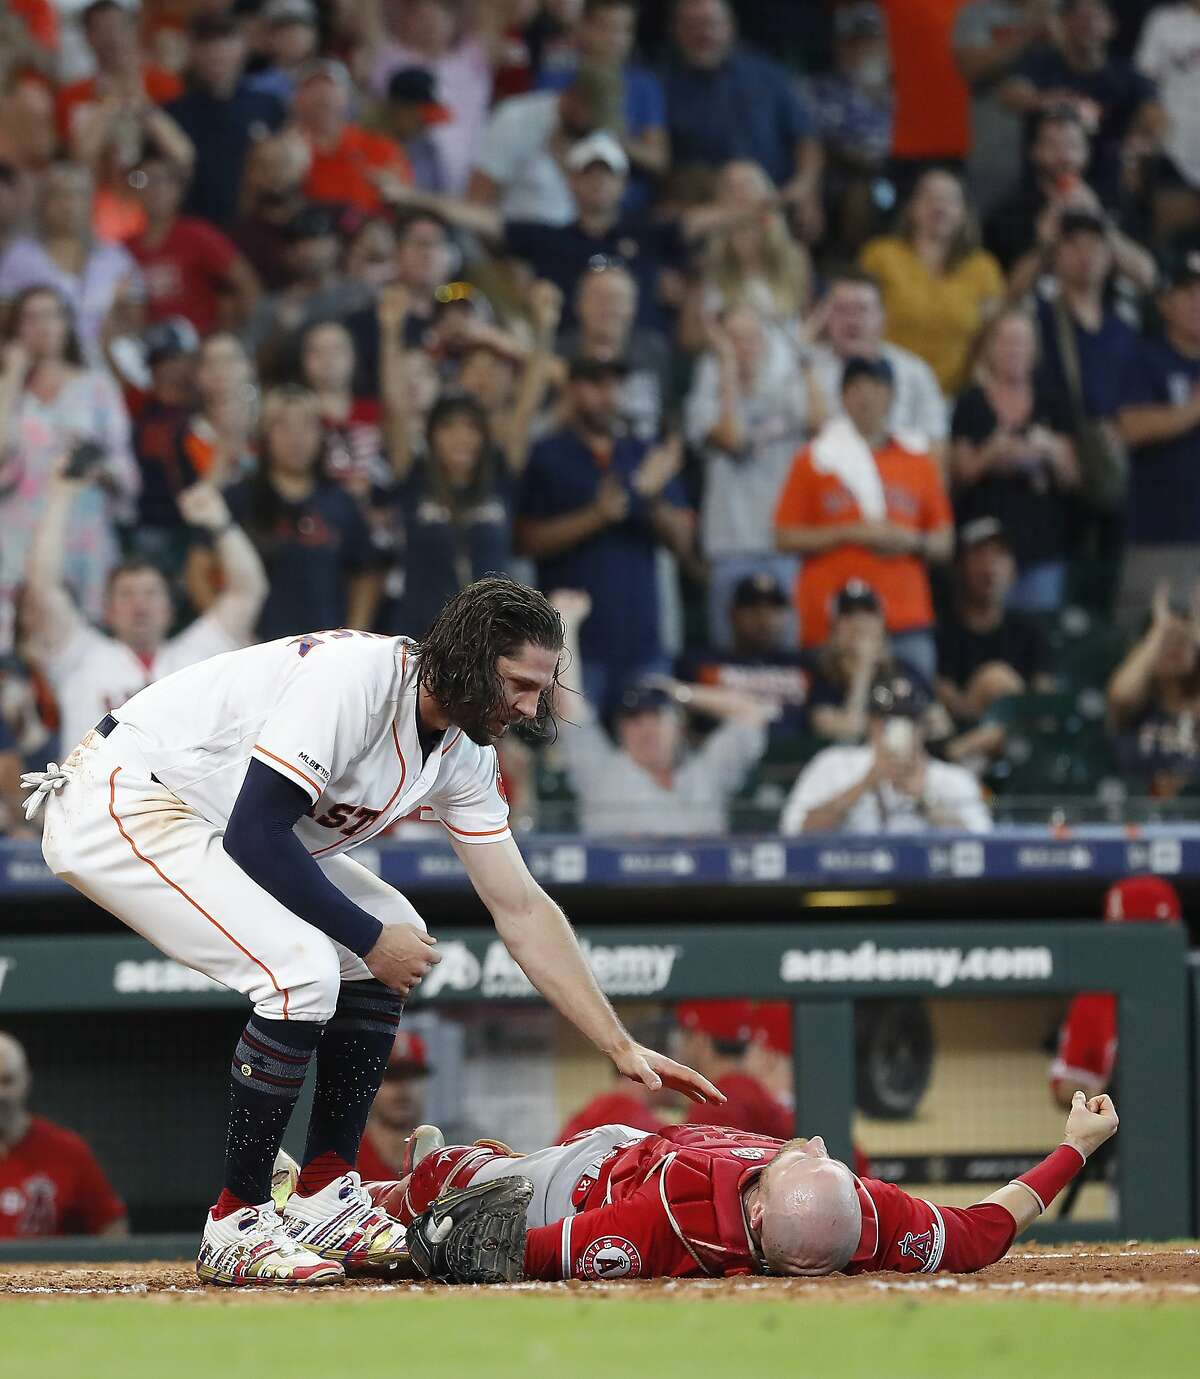 Houston Astros Jake Marisnick (6) checks on Los Angeles Angels catcher Jonathan Lucroy (20) after Lucroy was injured as they collided at home during the eighth inning of an MLB game at Minute Maid Park, Sunday, July 7, 2019, in Houston.